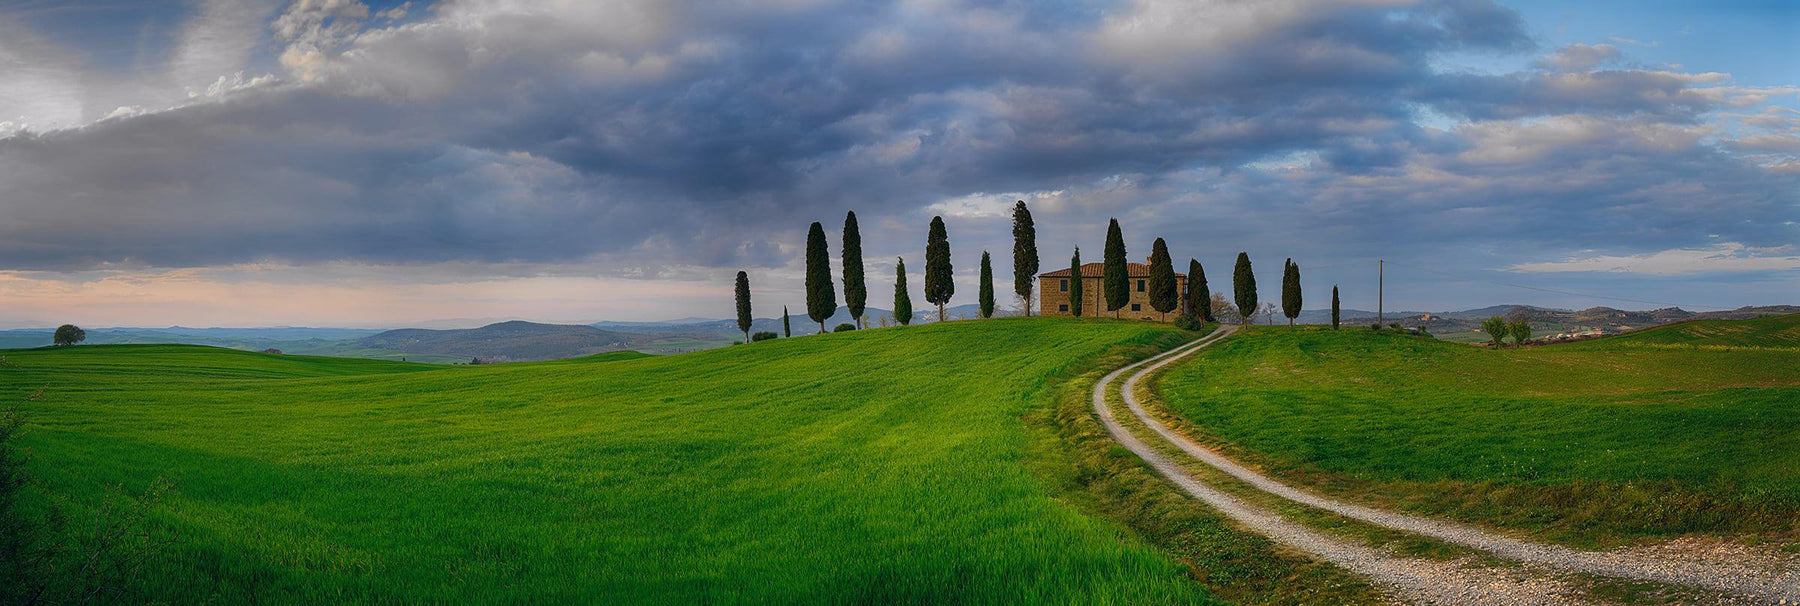 Dirt road leading through a green grass field to a stone house surrounded by cypress trees in Tuscany Italy